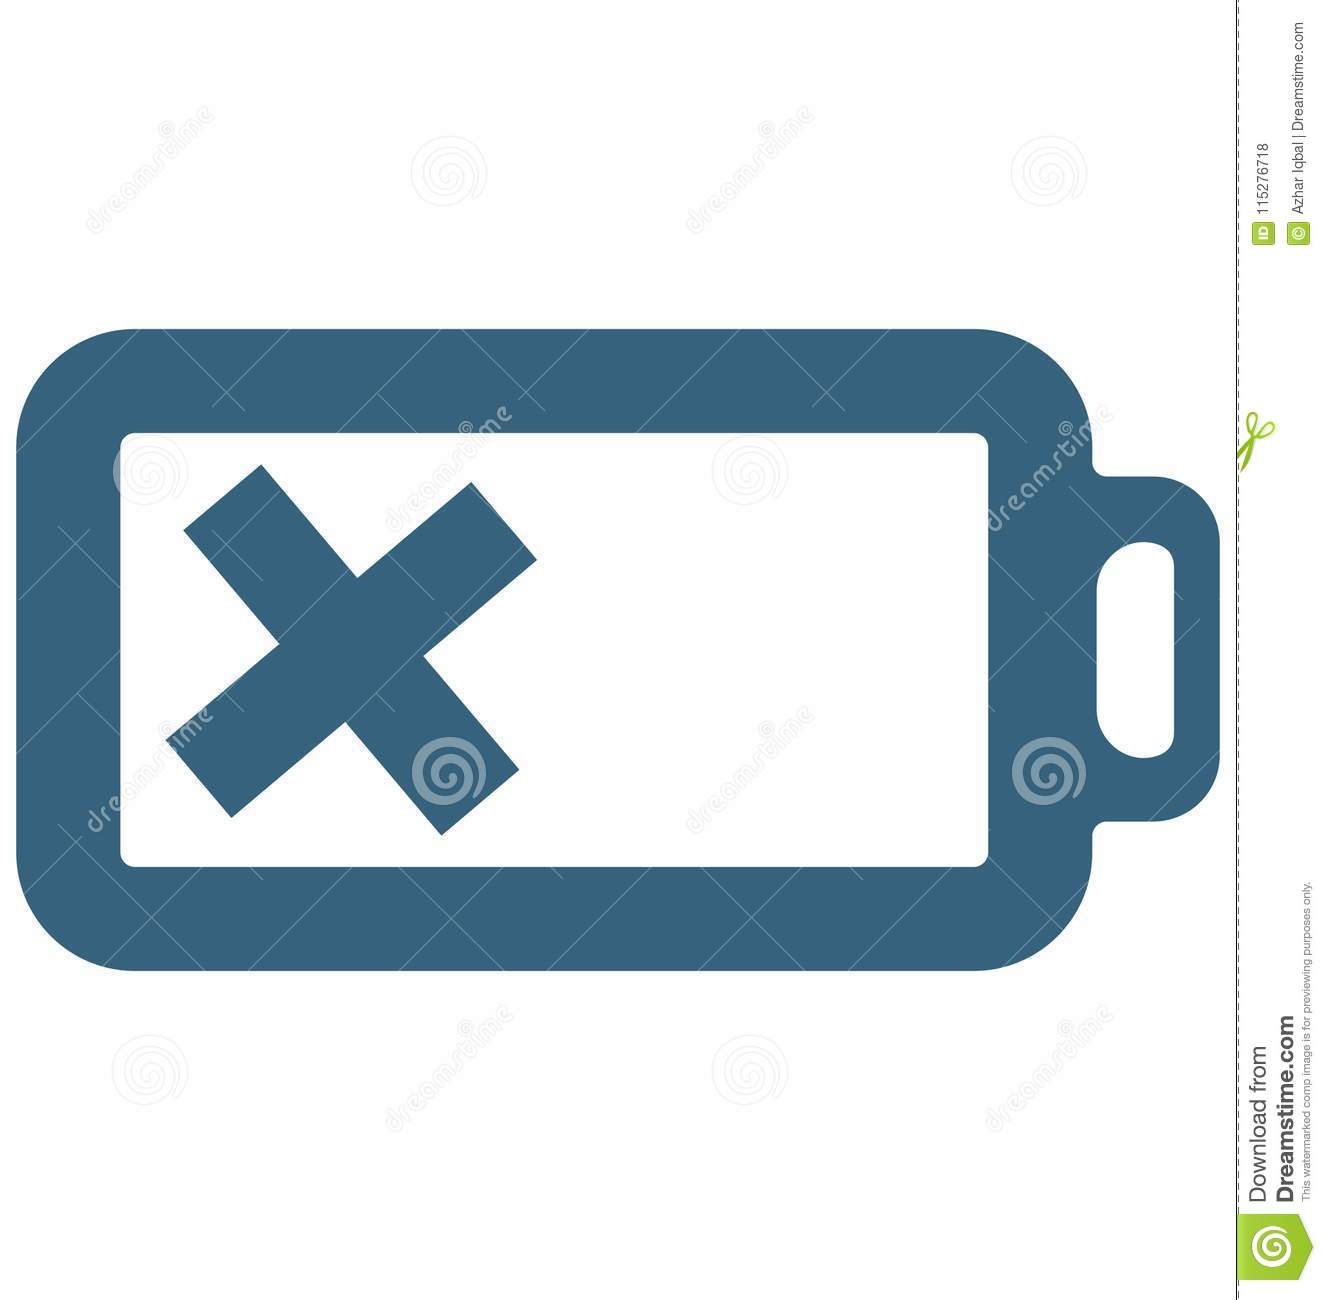 Empty Battery glyph Vector Icon special Signs and symbols